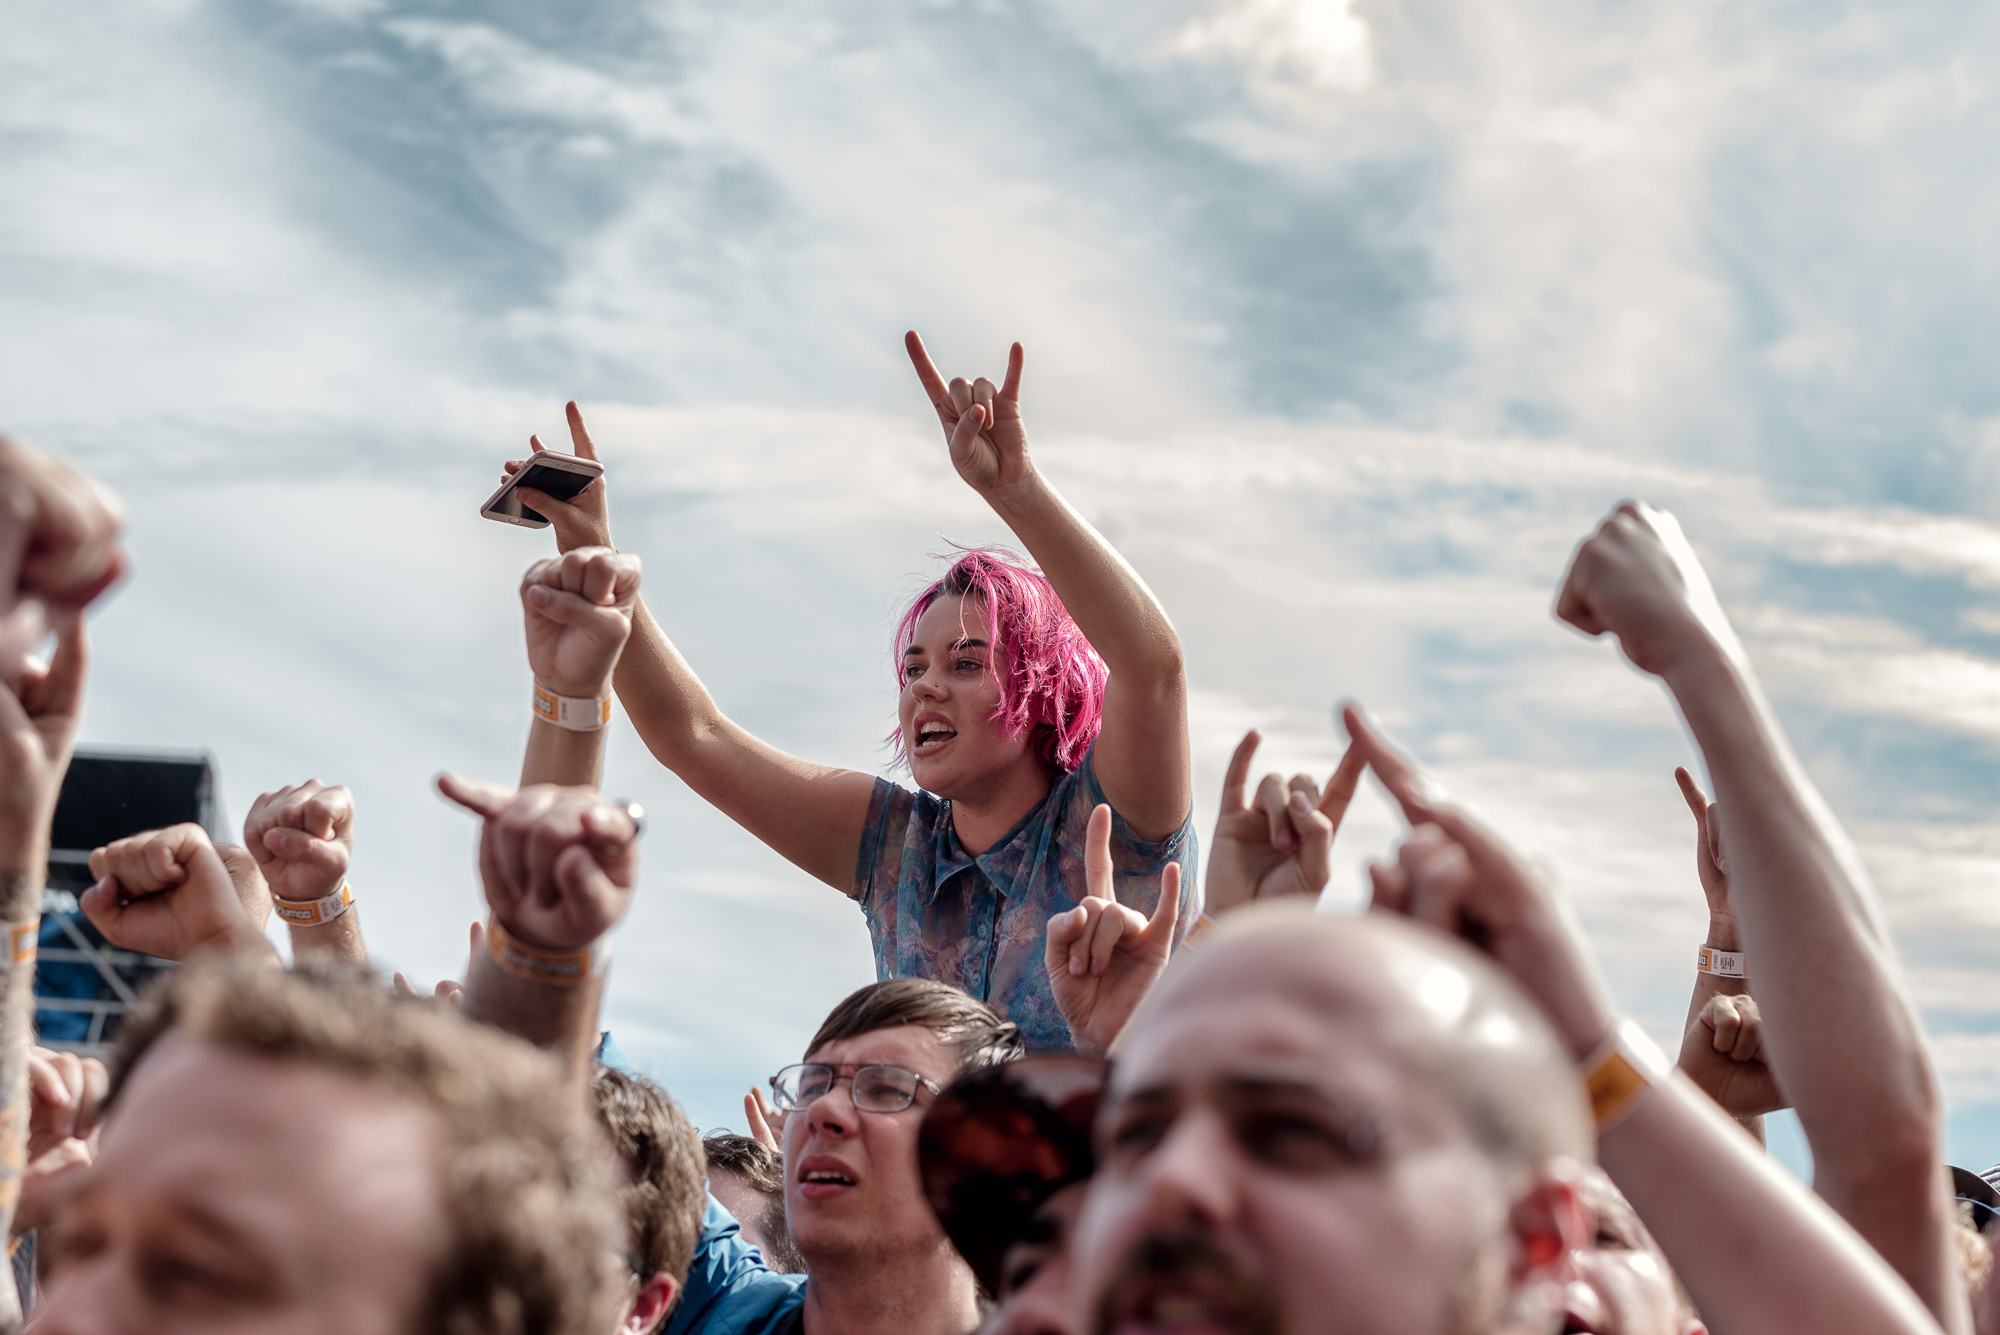 Download Festival Melbourne 2018 - Paul Tadday Photography - 0117.jpg